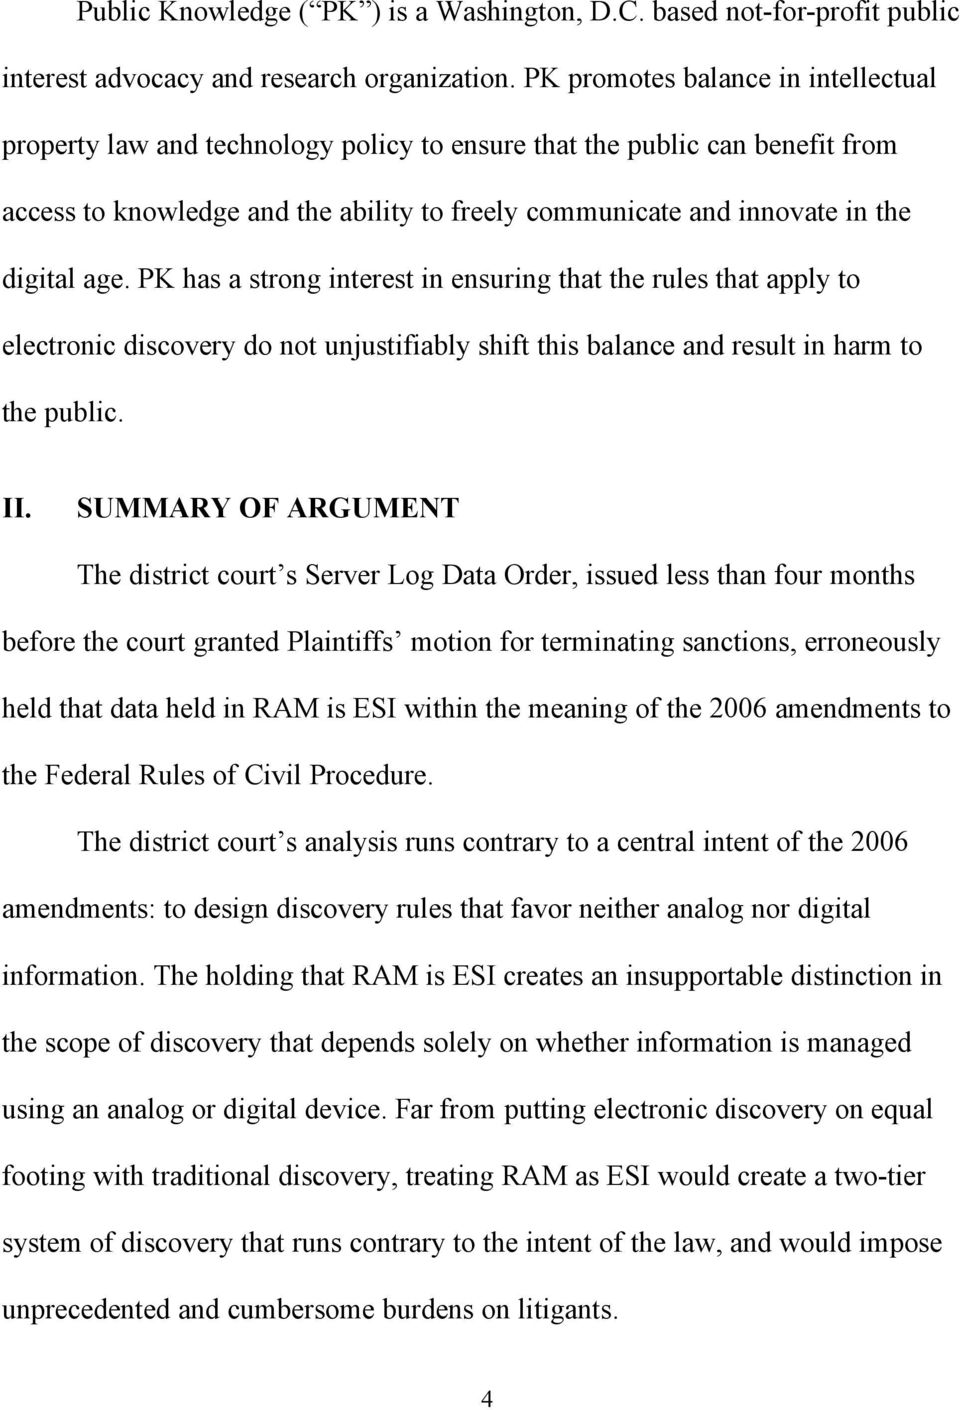 age. PK has a strong interest in ensuring that the rules that apply to electronic discovery do not unjustifiably shift this balance and result in harm to the public. II.